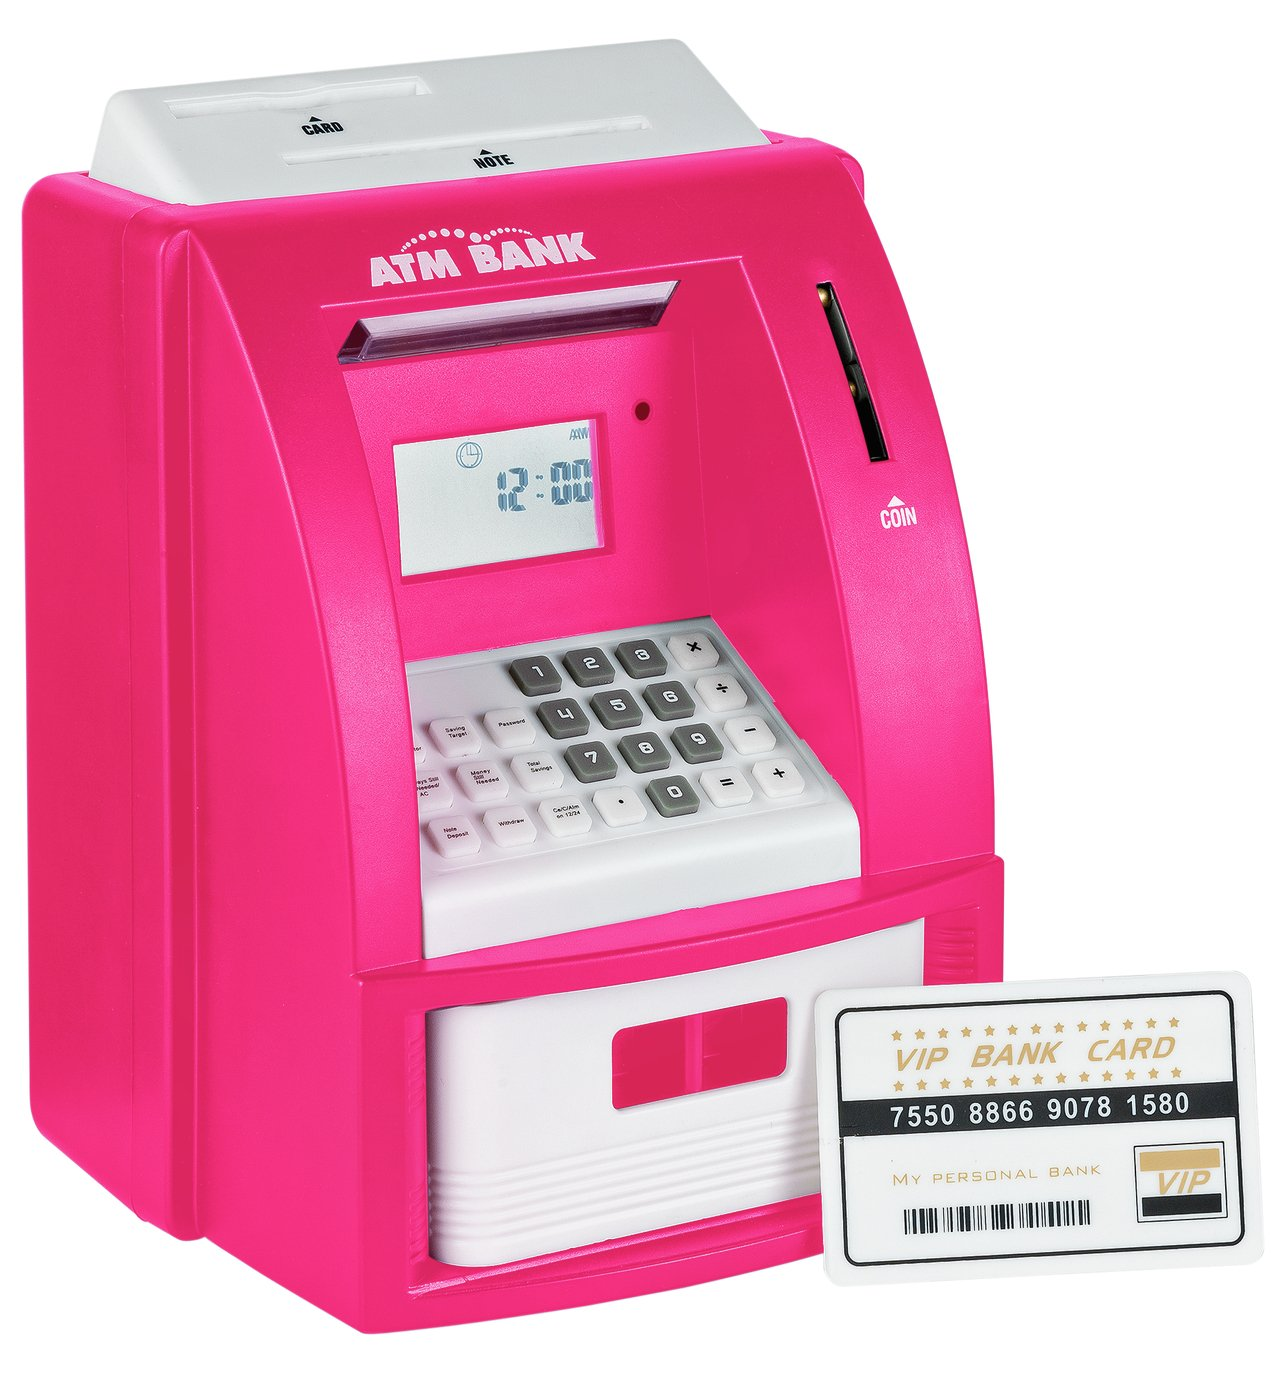 pretty-pink-cash-machine